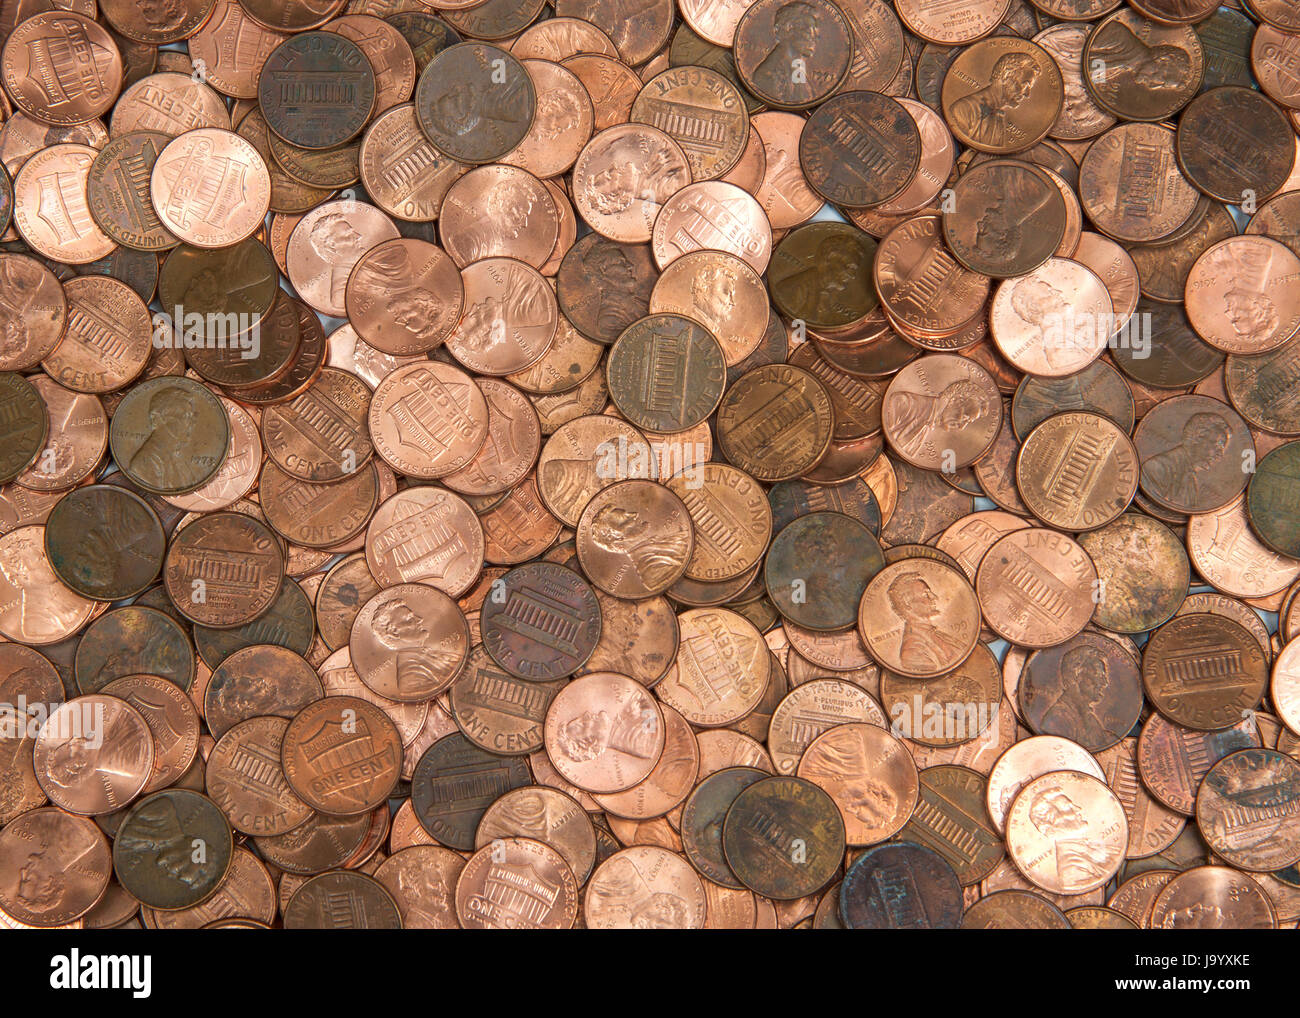 Flat view pennies. United States currency penny, many old new dirty clean viewed from directly above. The penny - Stock Image